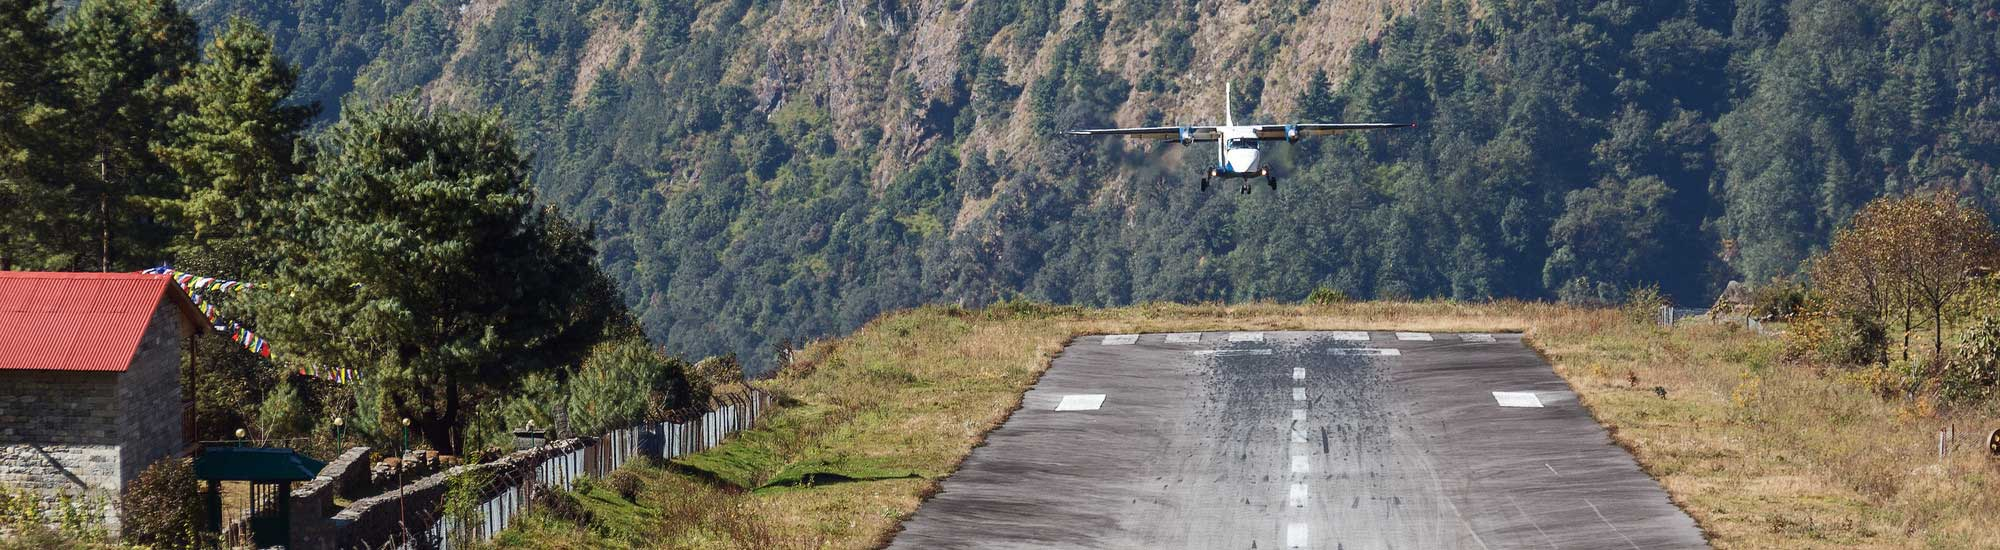 Twin Otter aircraft landing on remote airstrip